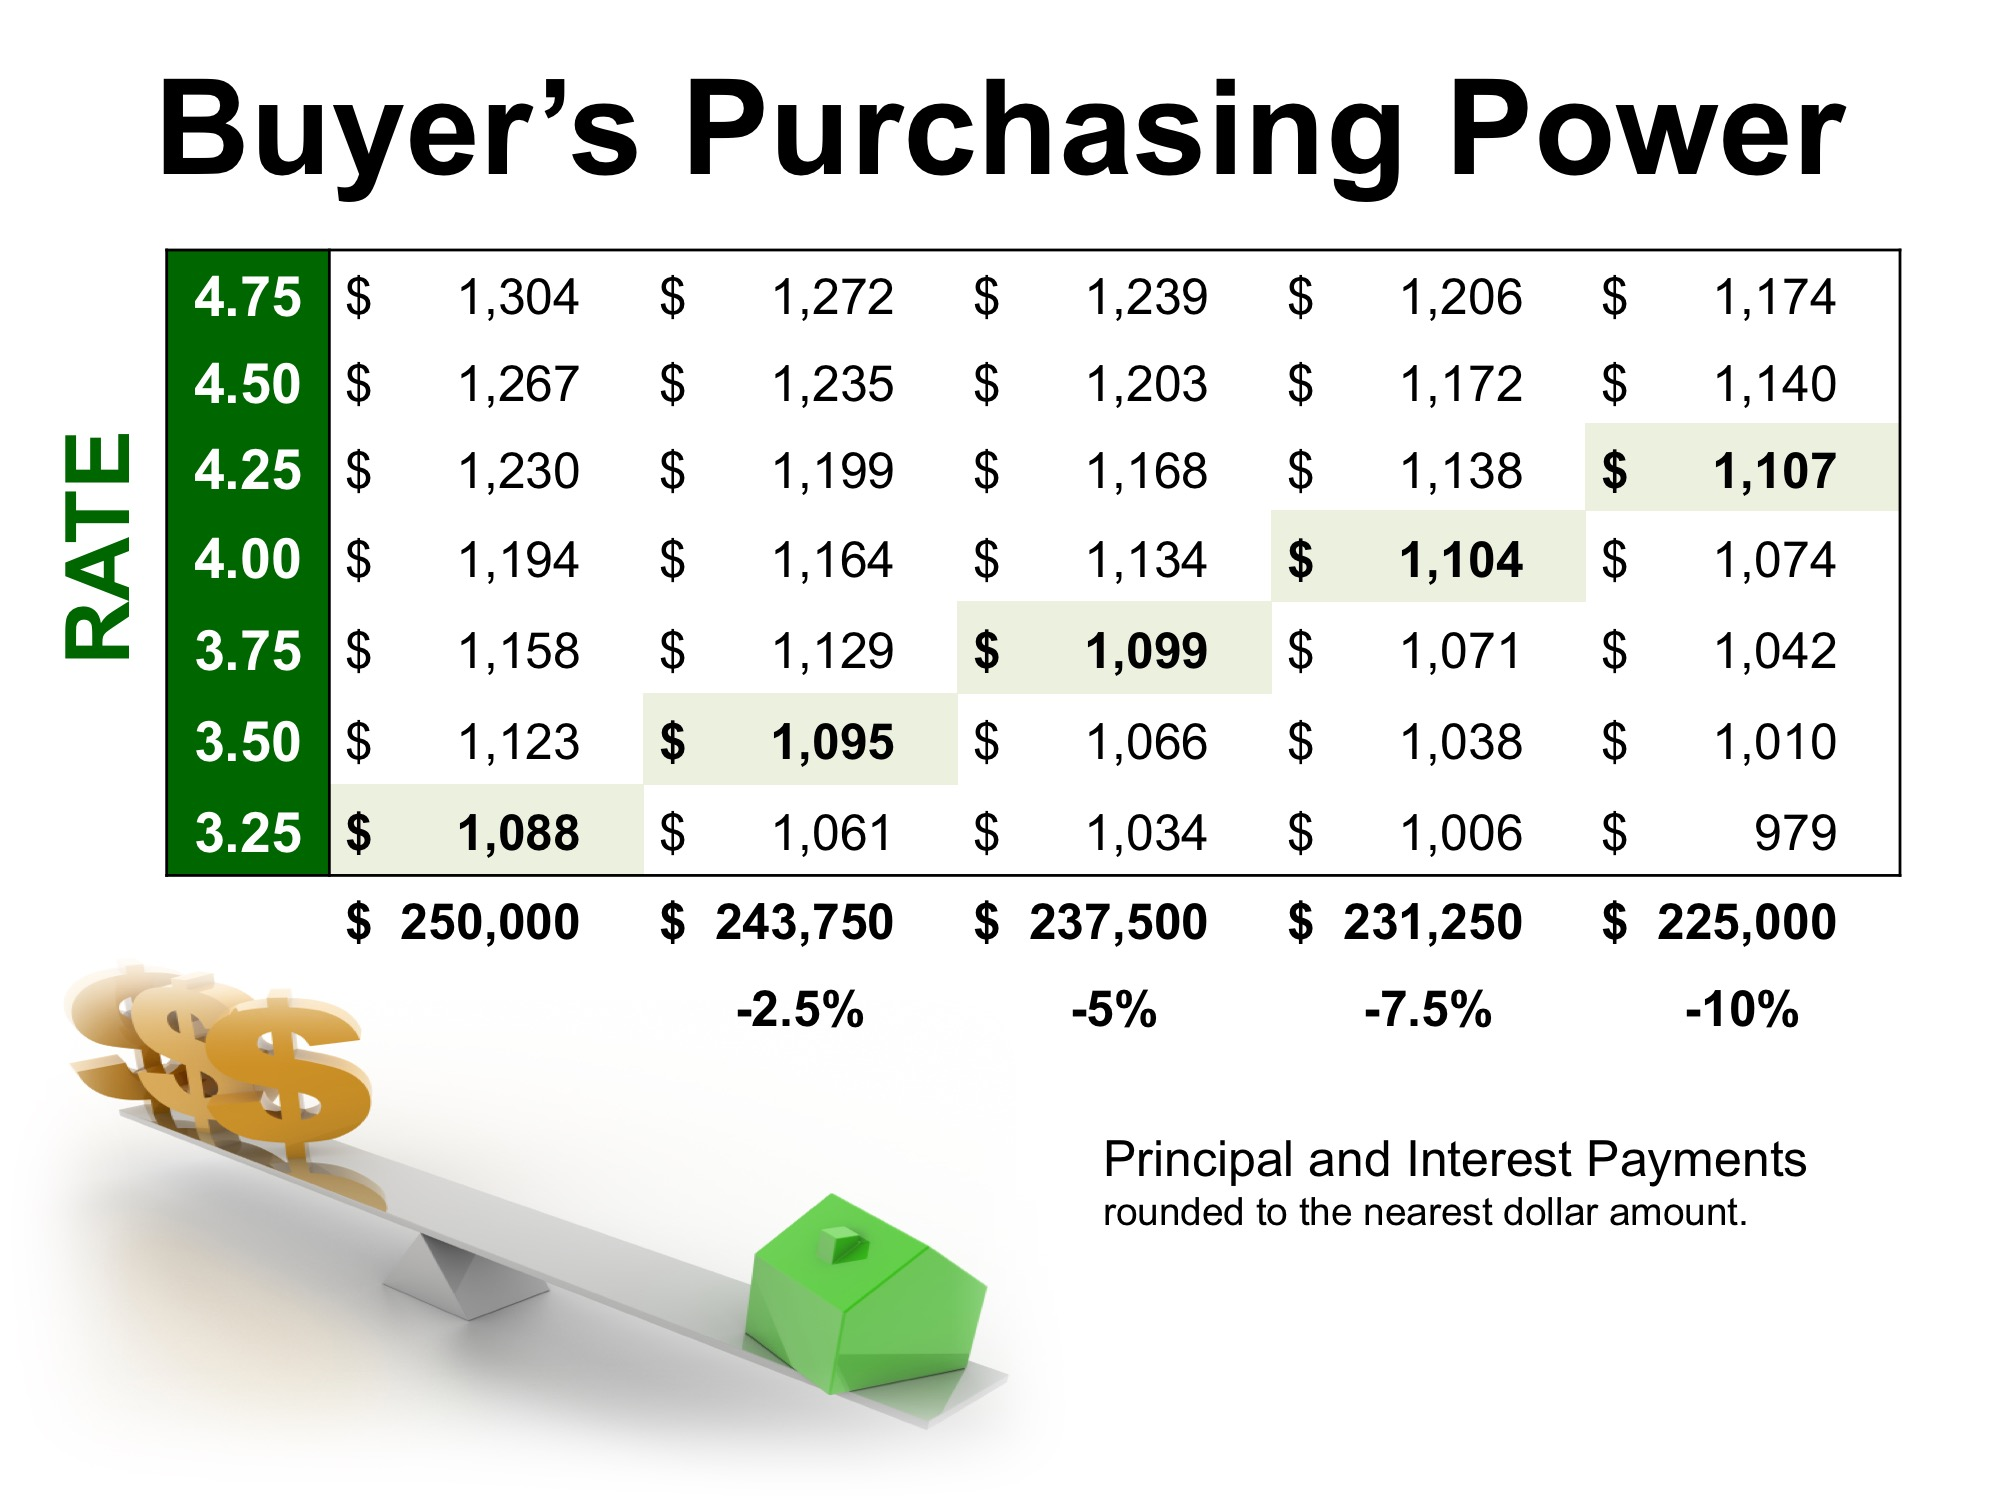 Purchasing power when buying a home